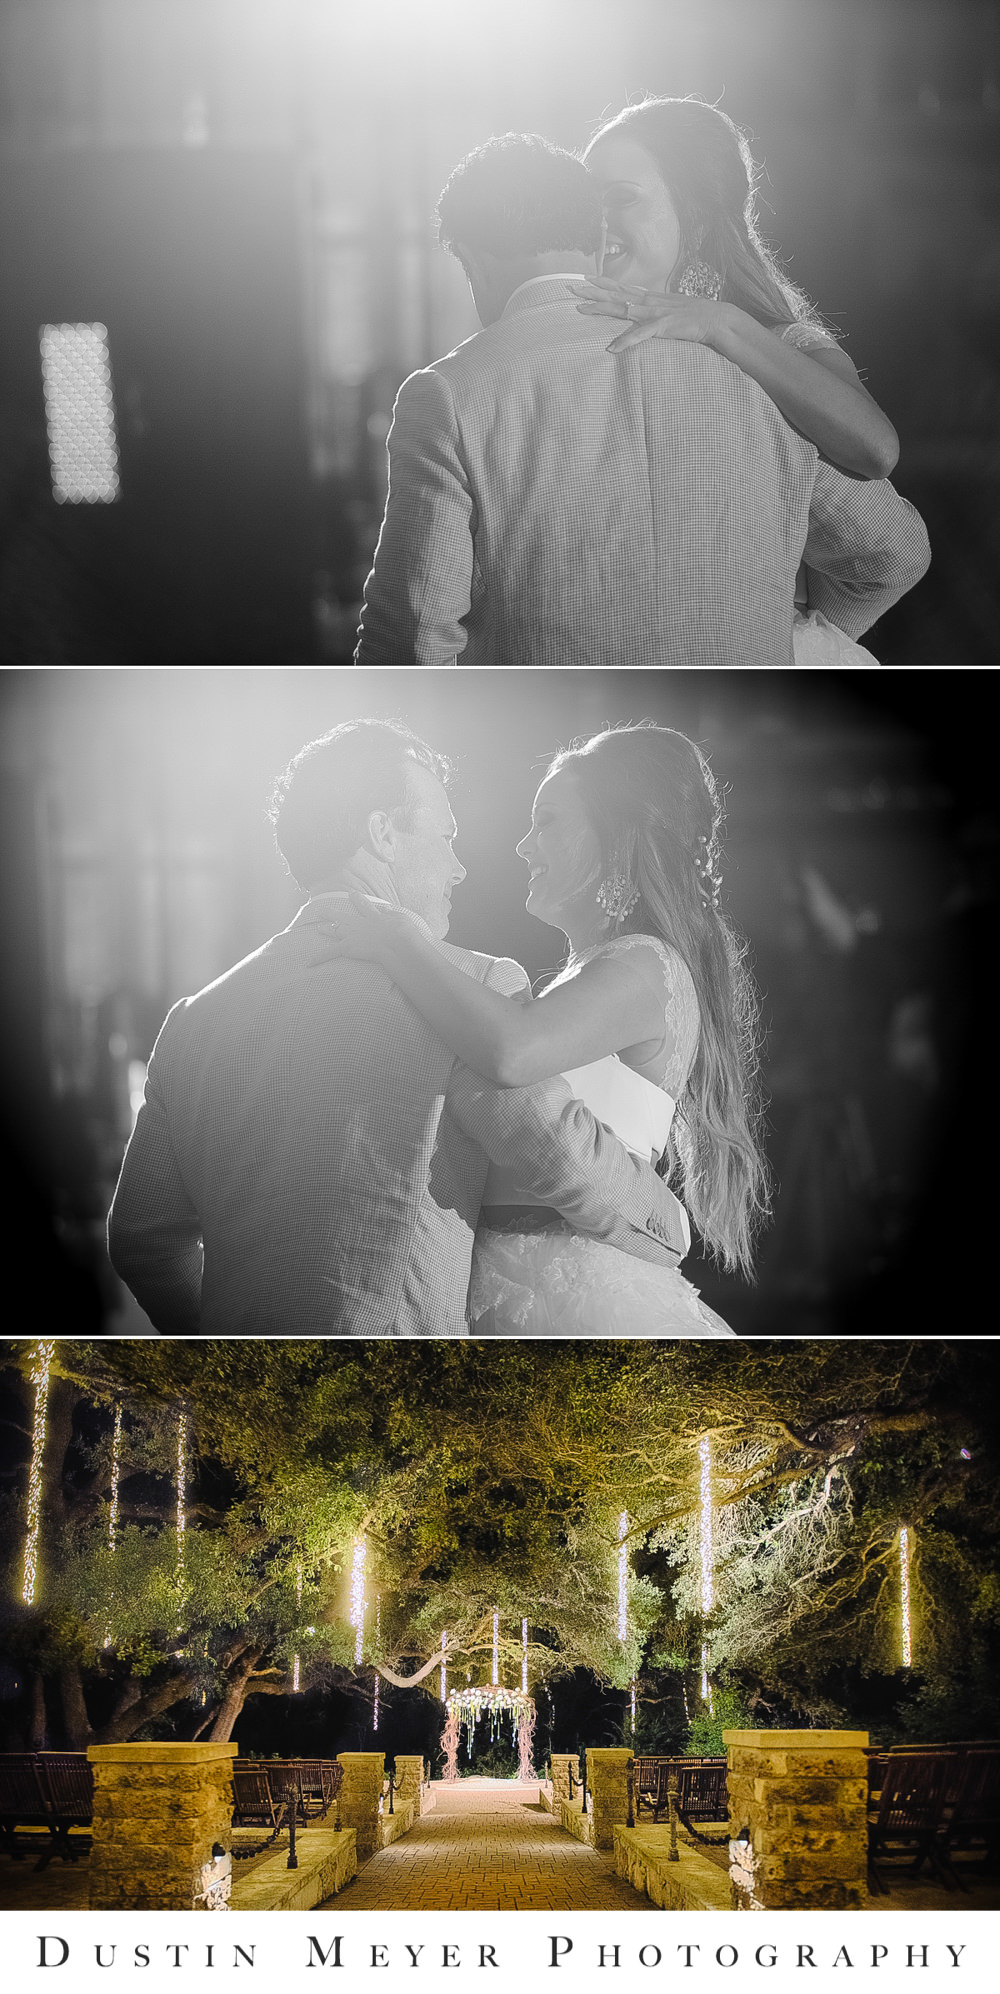 black and white wedding photos, wedding reception, bride and groom, first dance, camp lucy, sacred oaks, wedding ceremony,